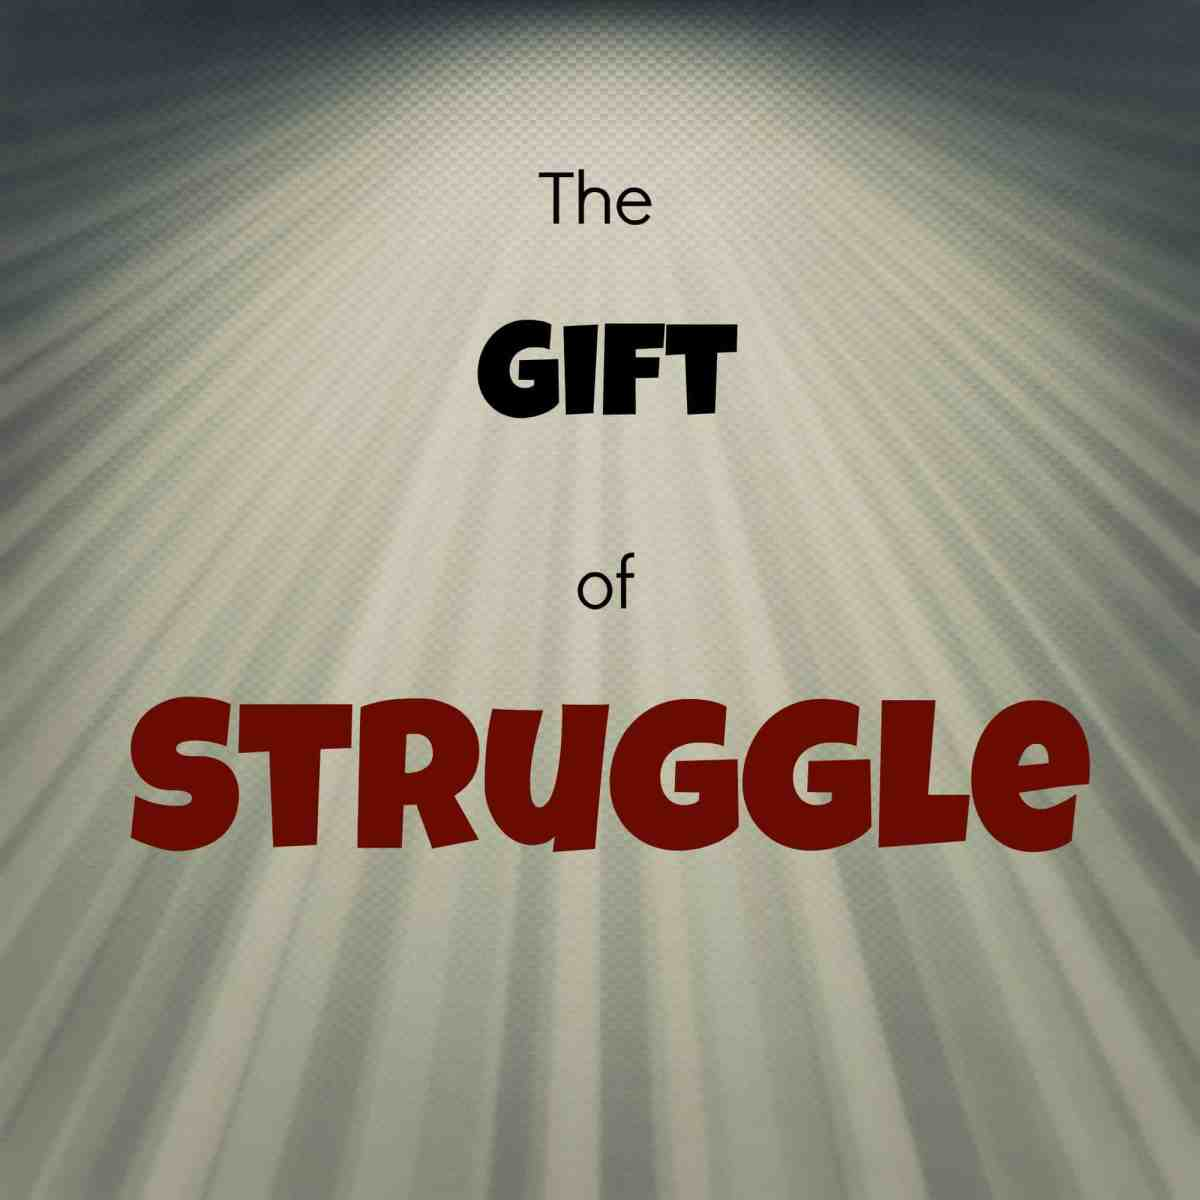 Everyone should have the gift of struggle